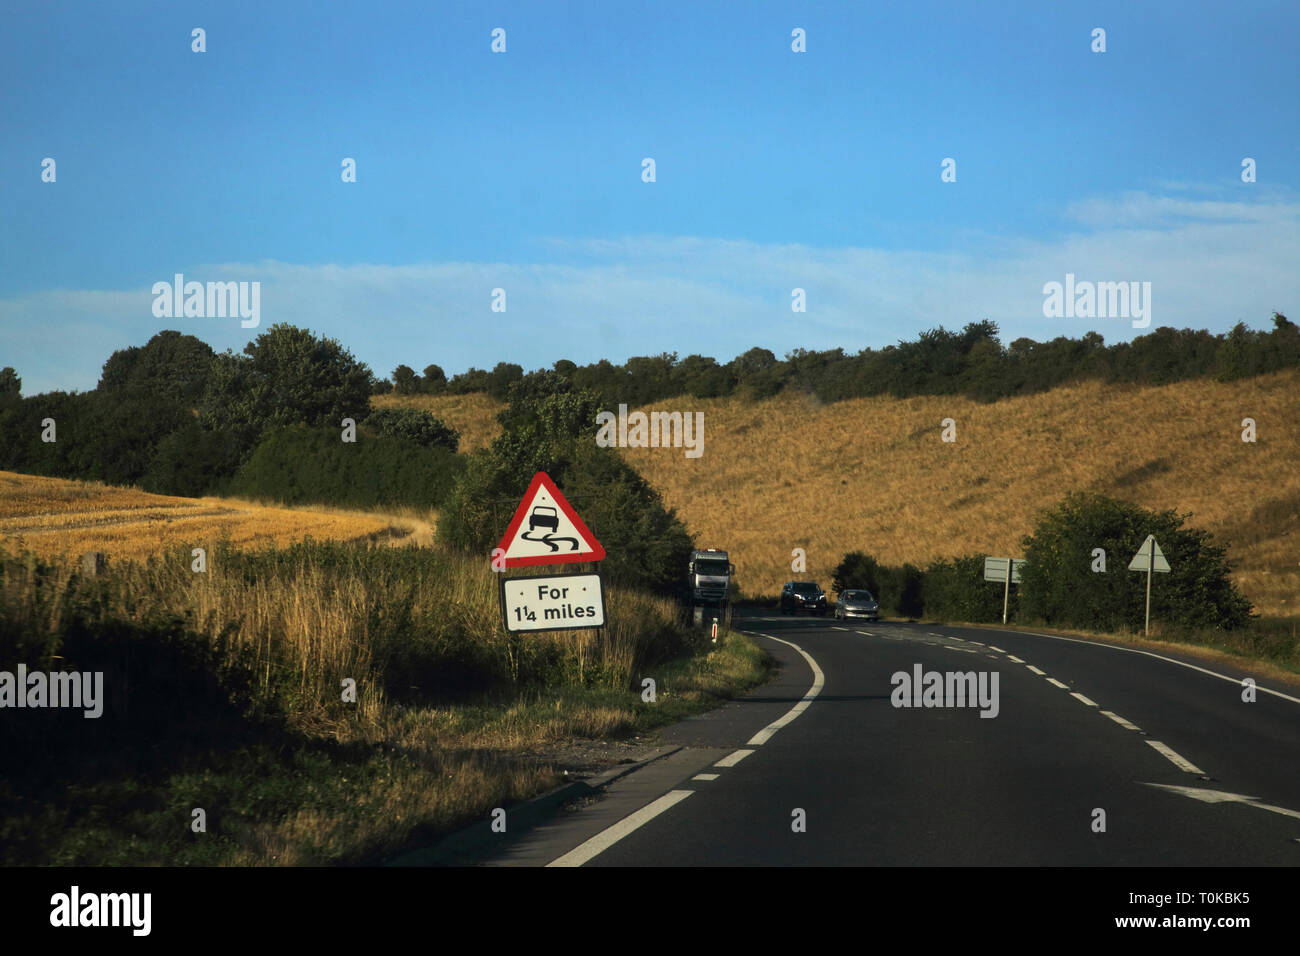 Cars on A303 on the way to Dorset slippery road ahead signEngland Stock Photo